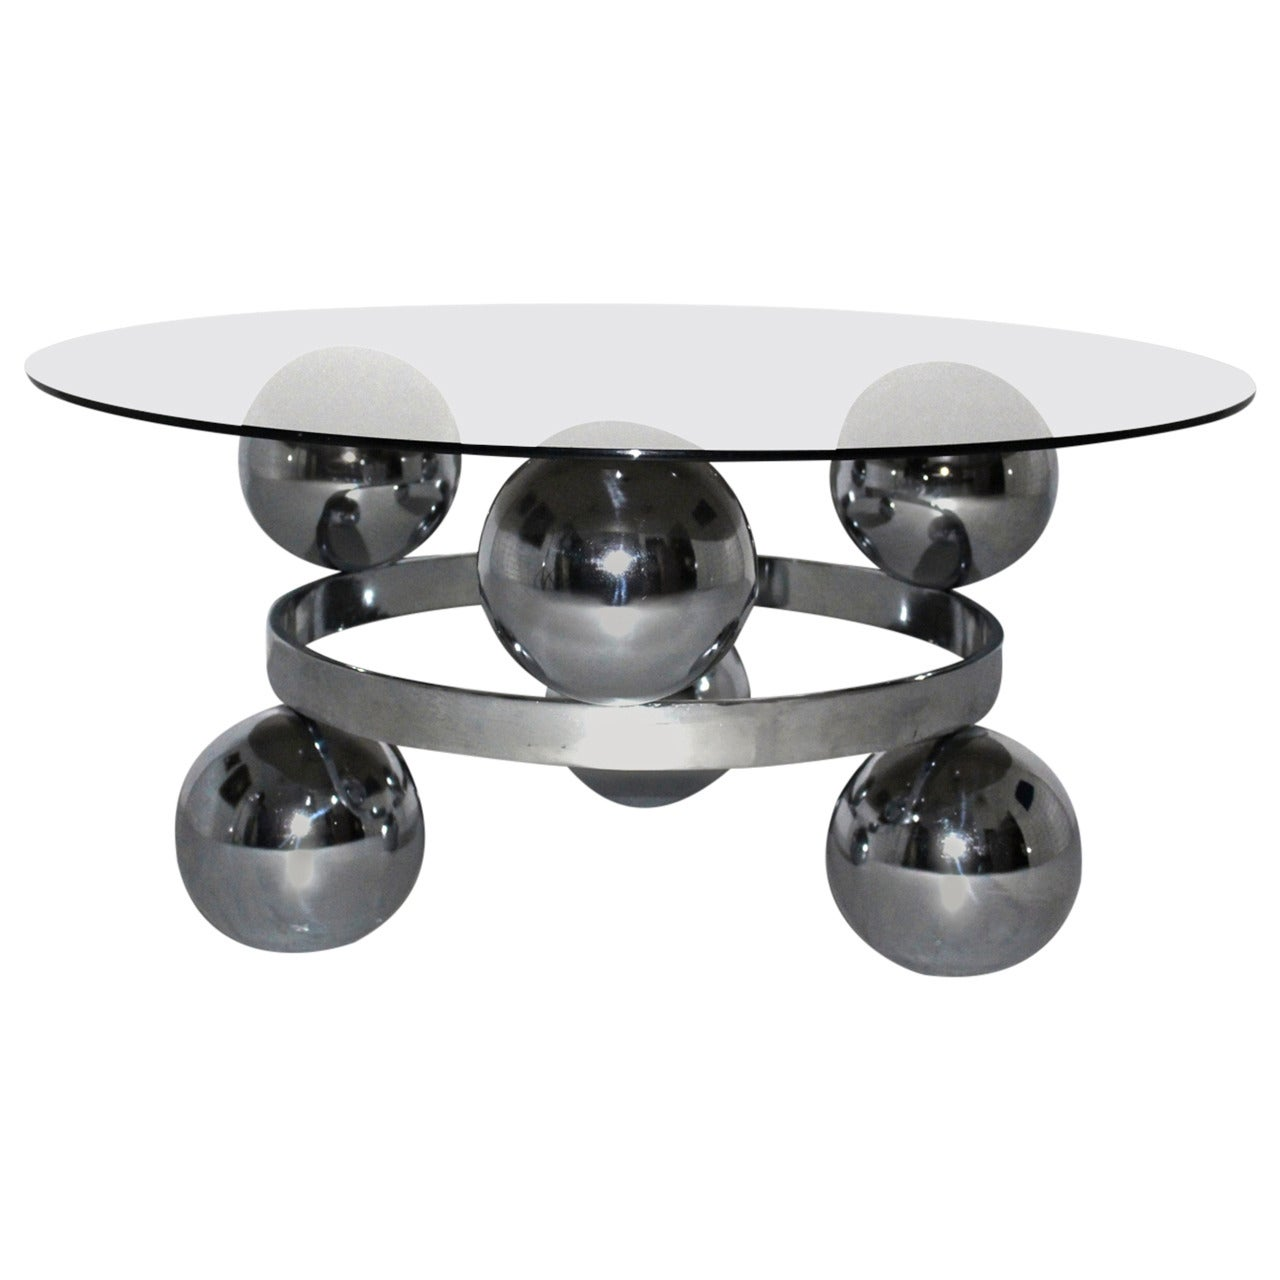 Space Age Vintage Chrome Coffee Table circa 1970 Germany